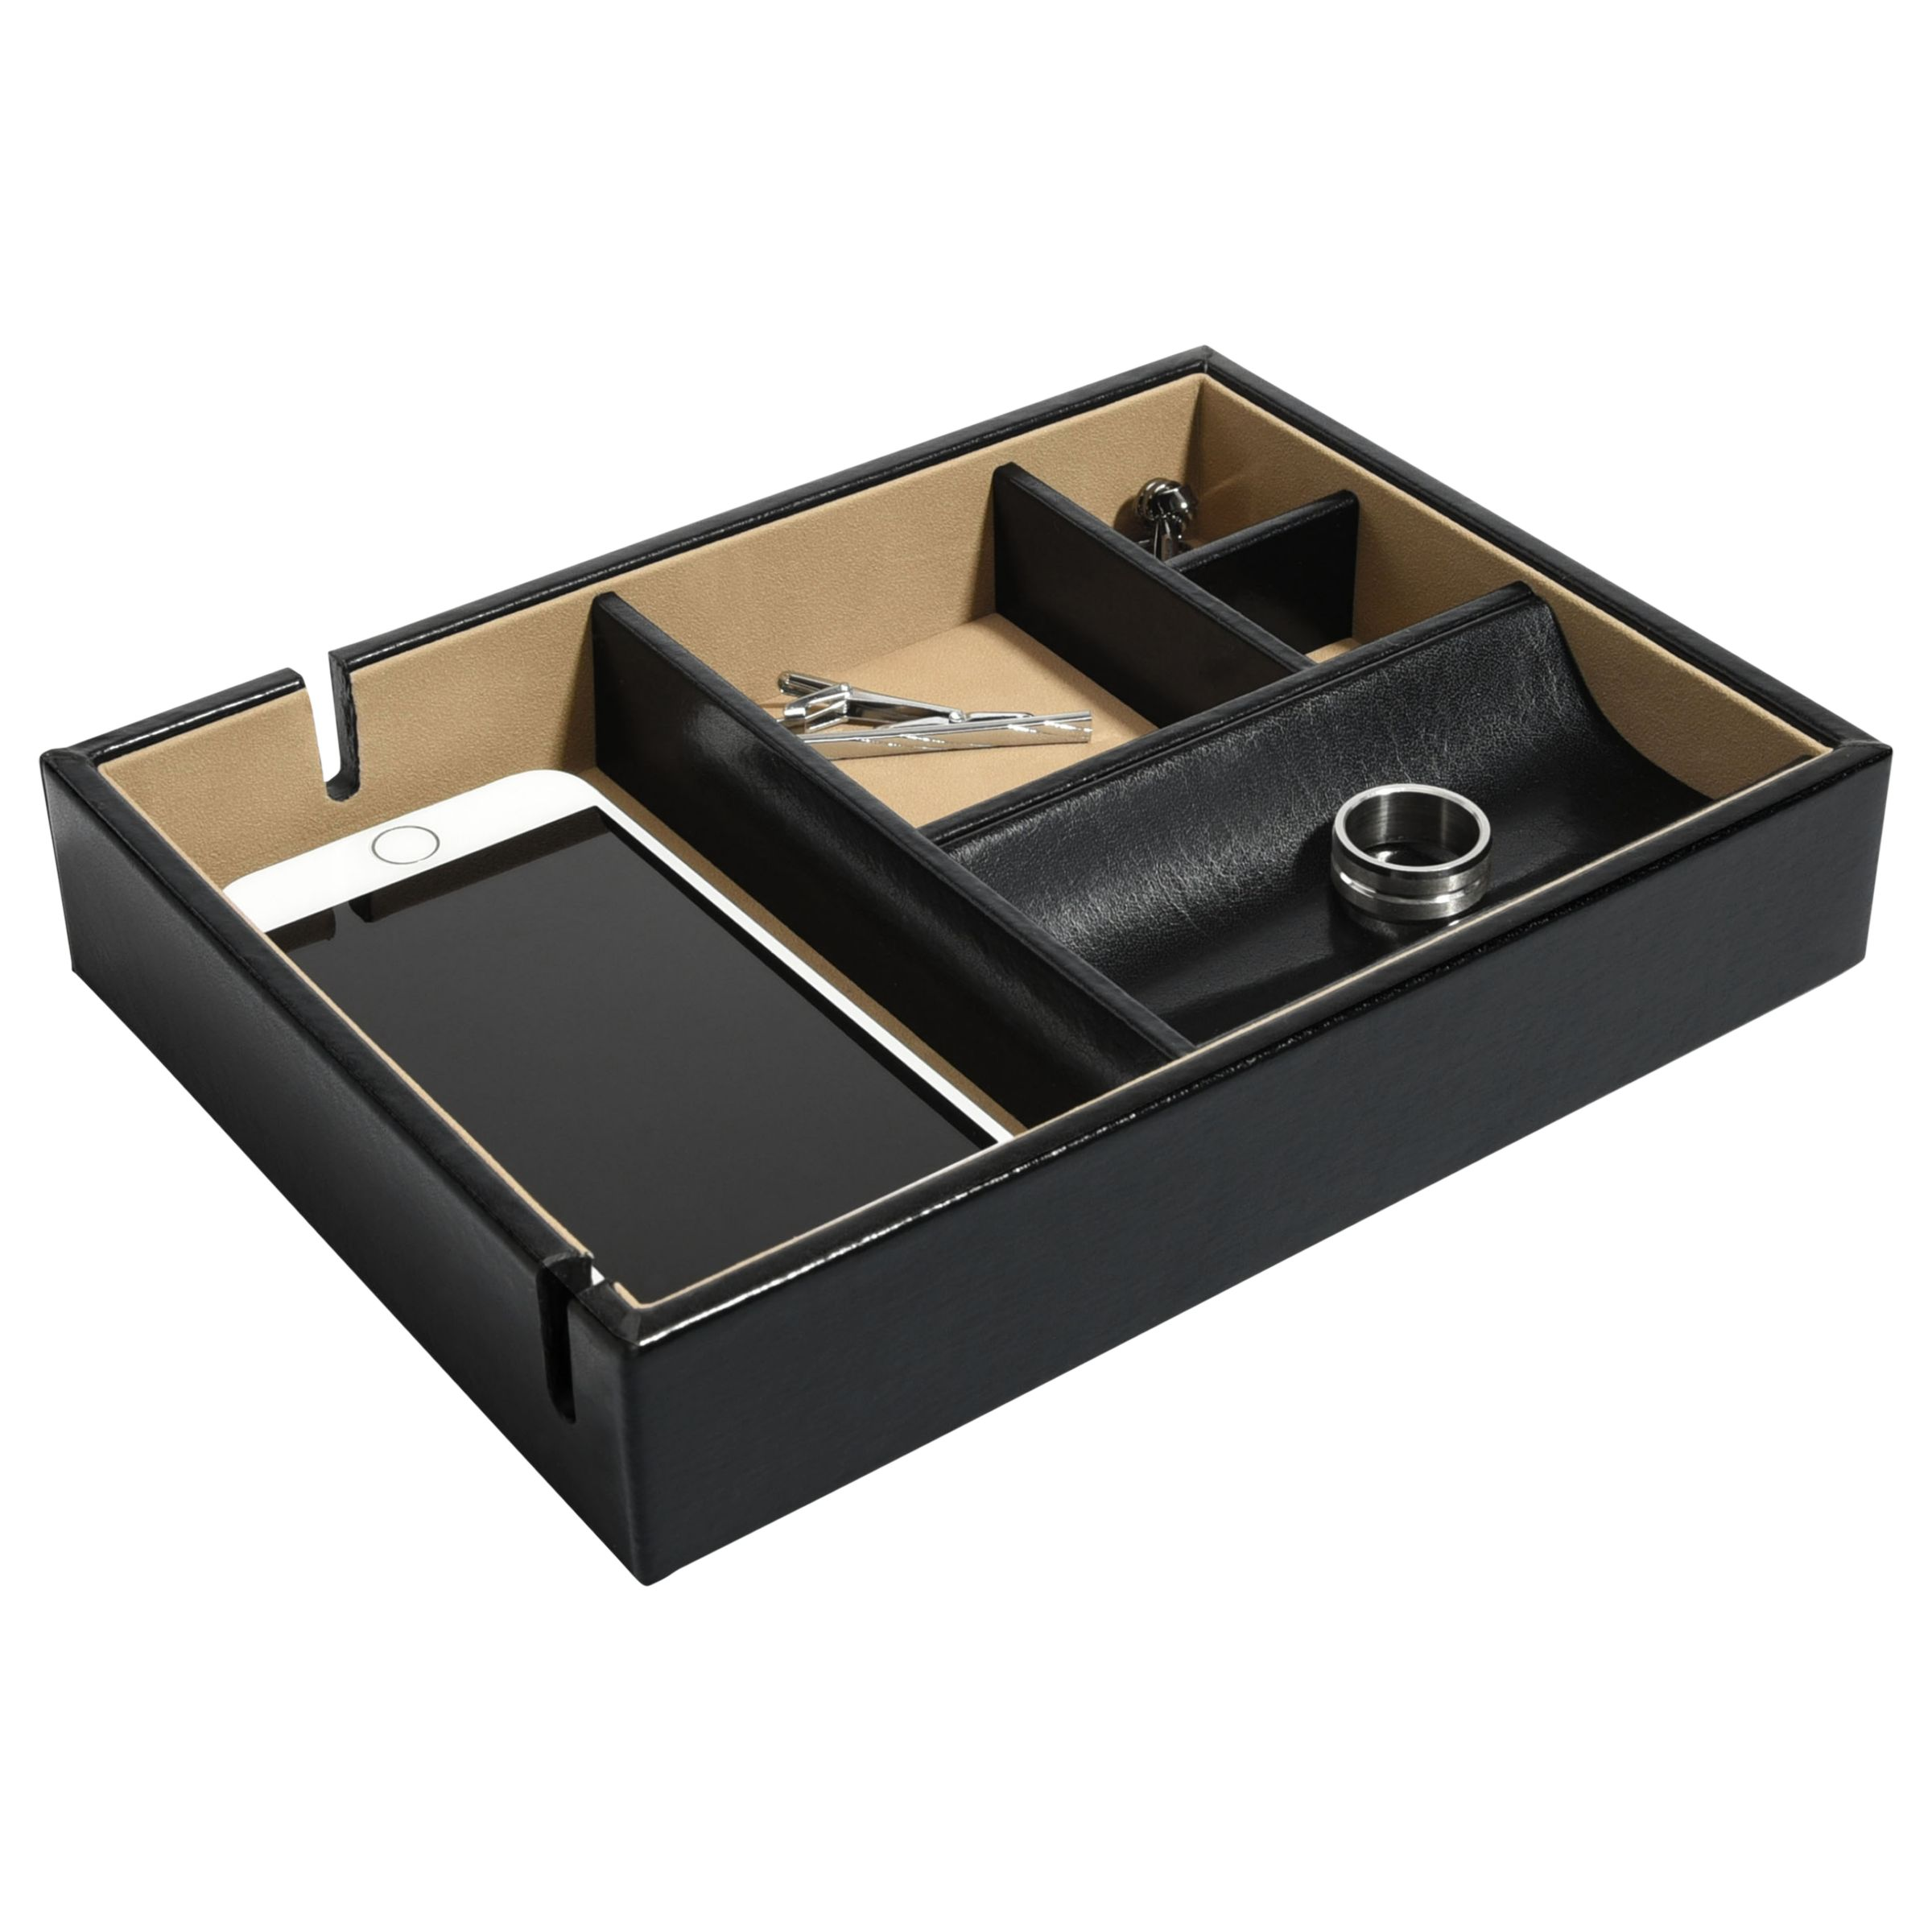 Dulwich Designs Dulwich Designs Windsor Leather Tray, Black